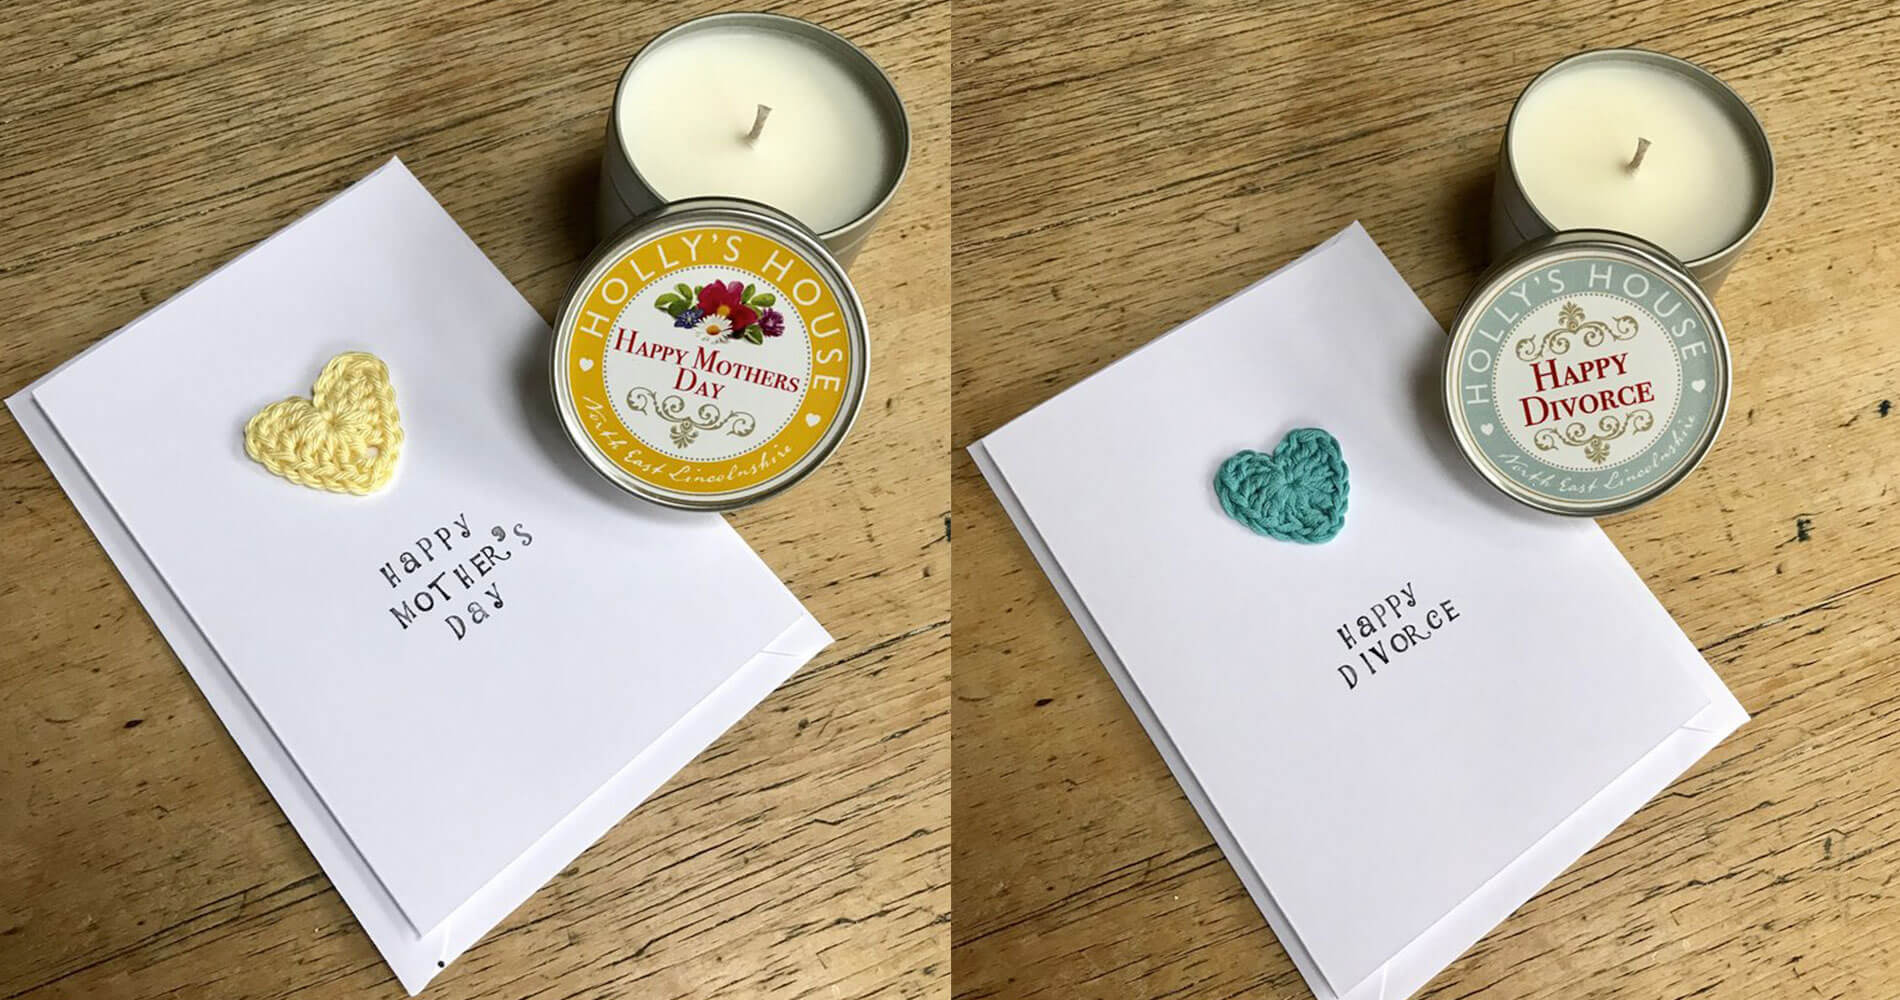 It Started with a Stitch - Cards and Candles